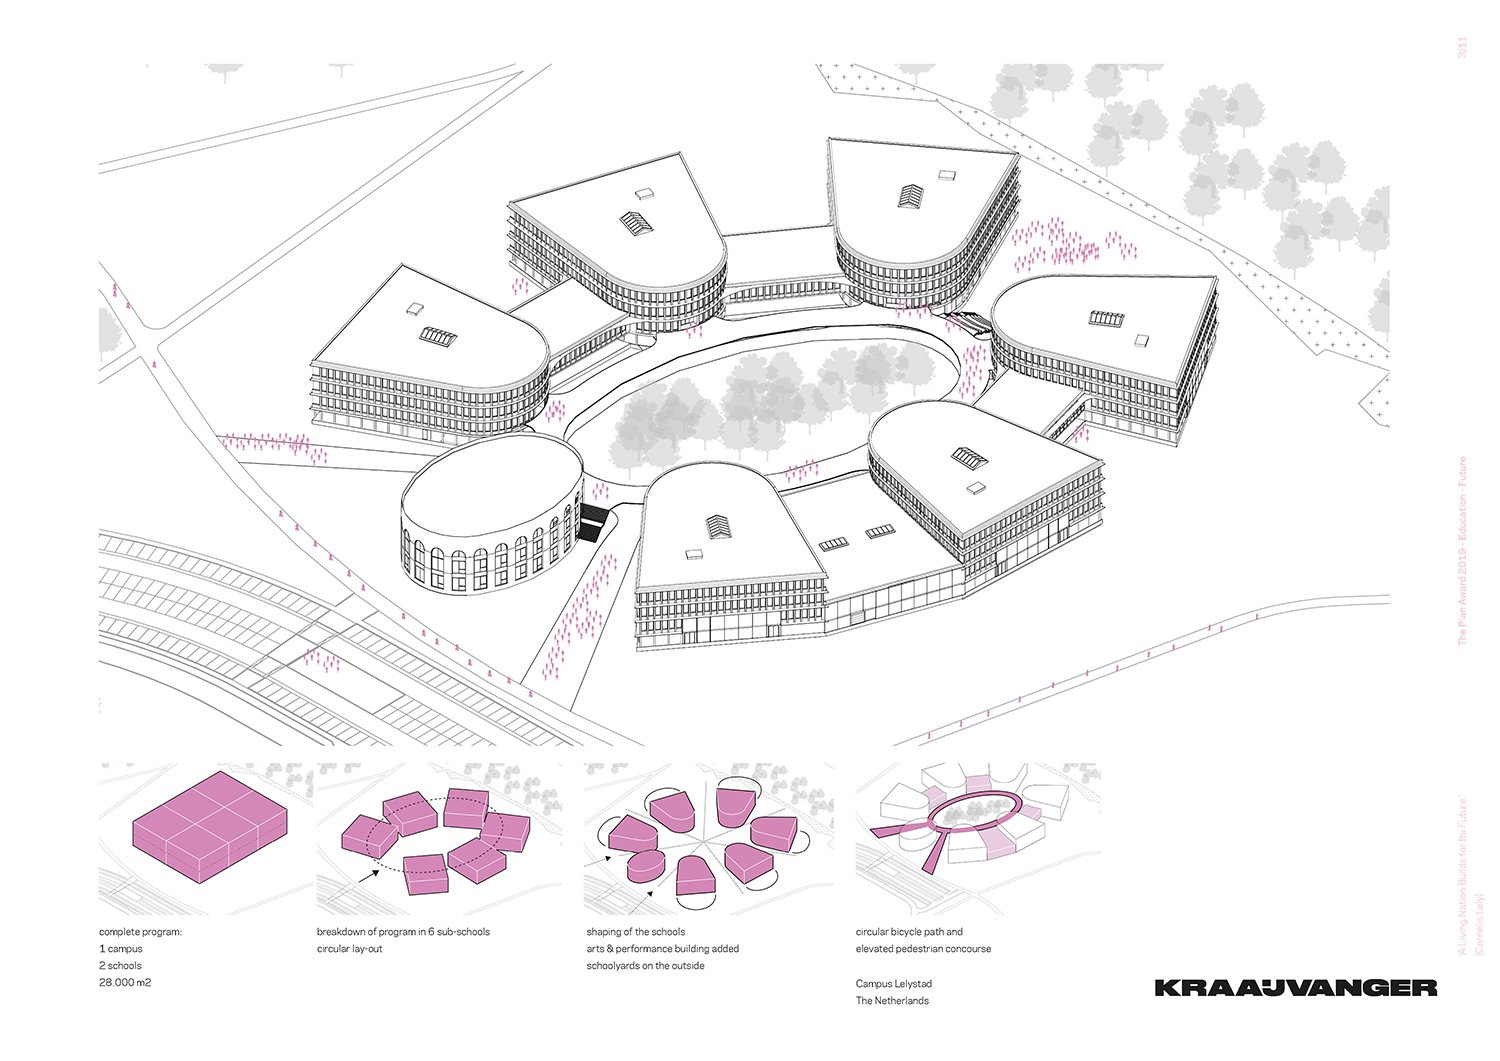 Large program for 27,500 m2, 3,800 pupils brought to small building scale © Kraaijvanger Architects}